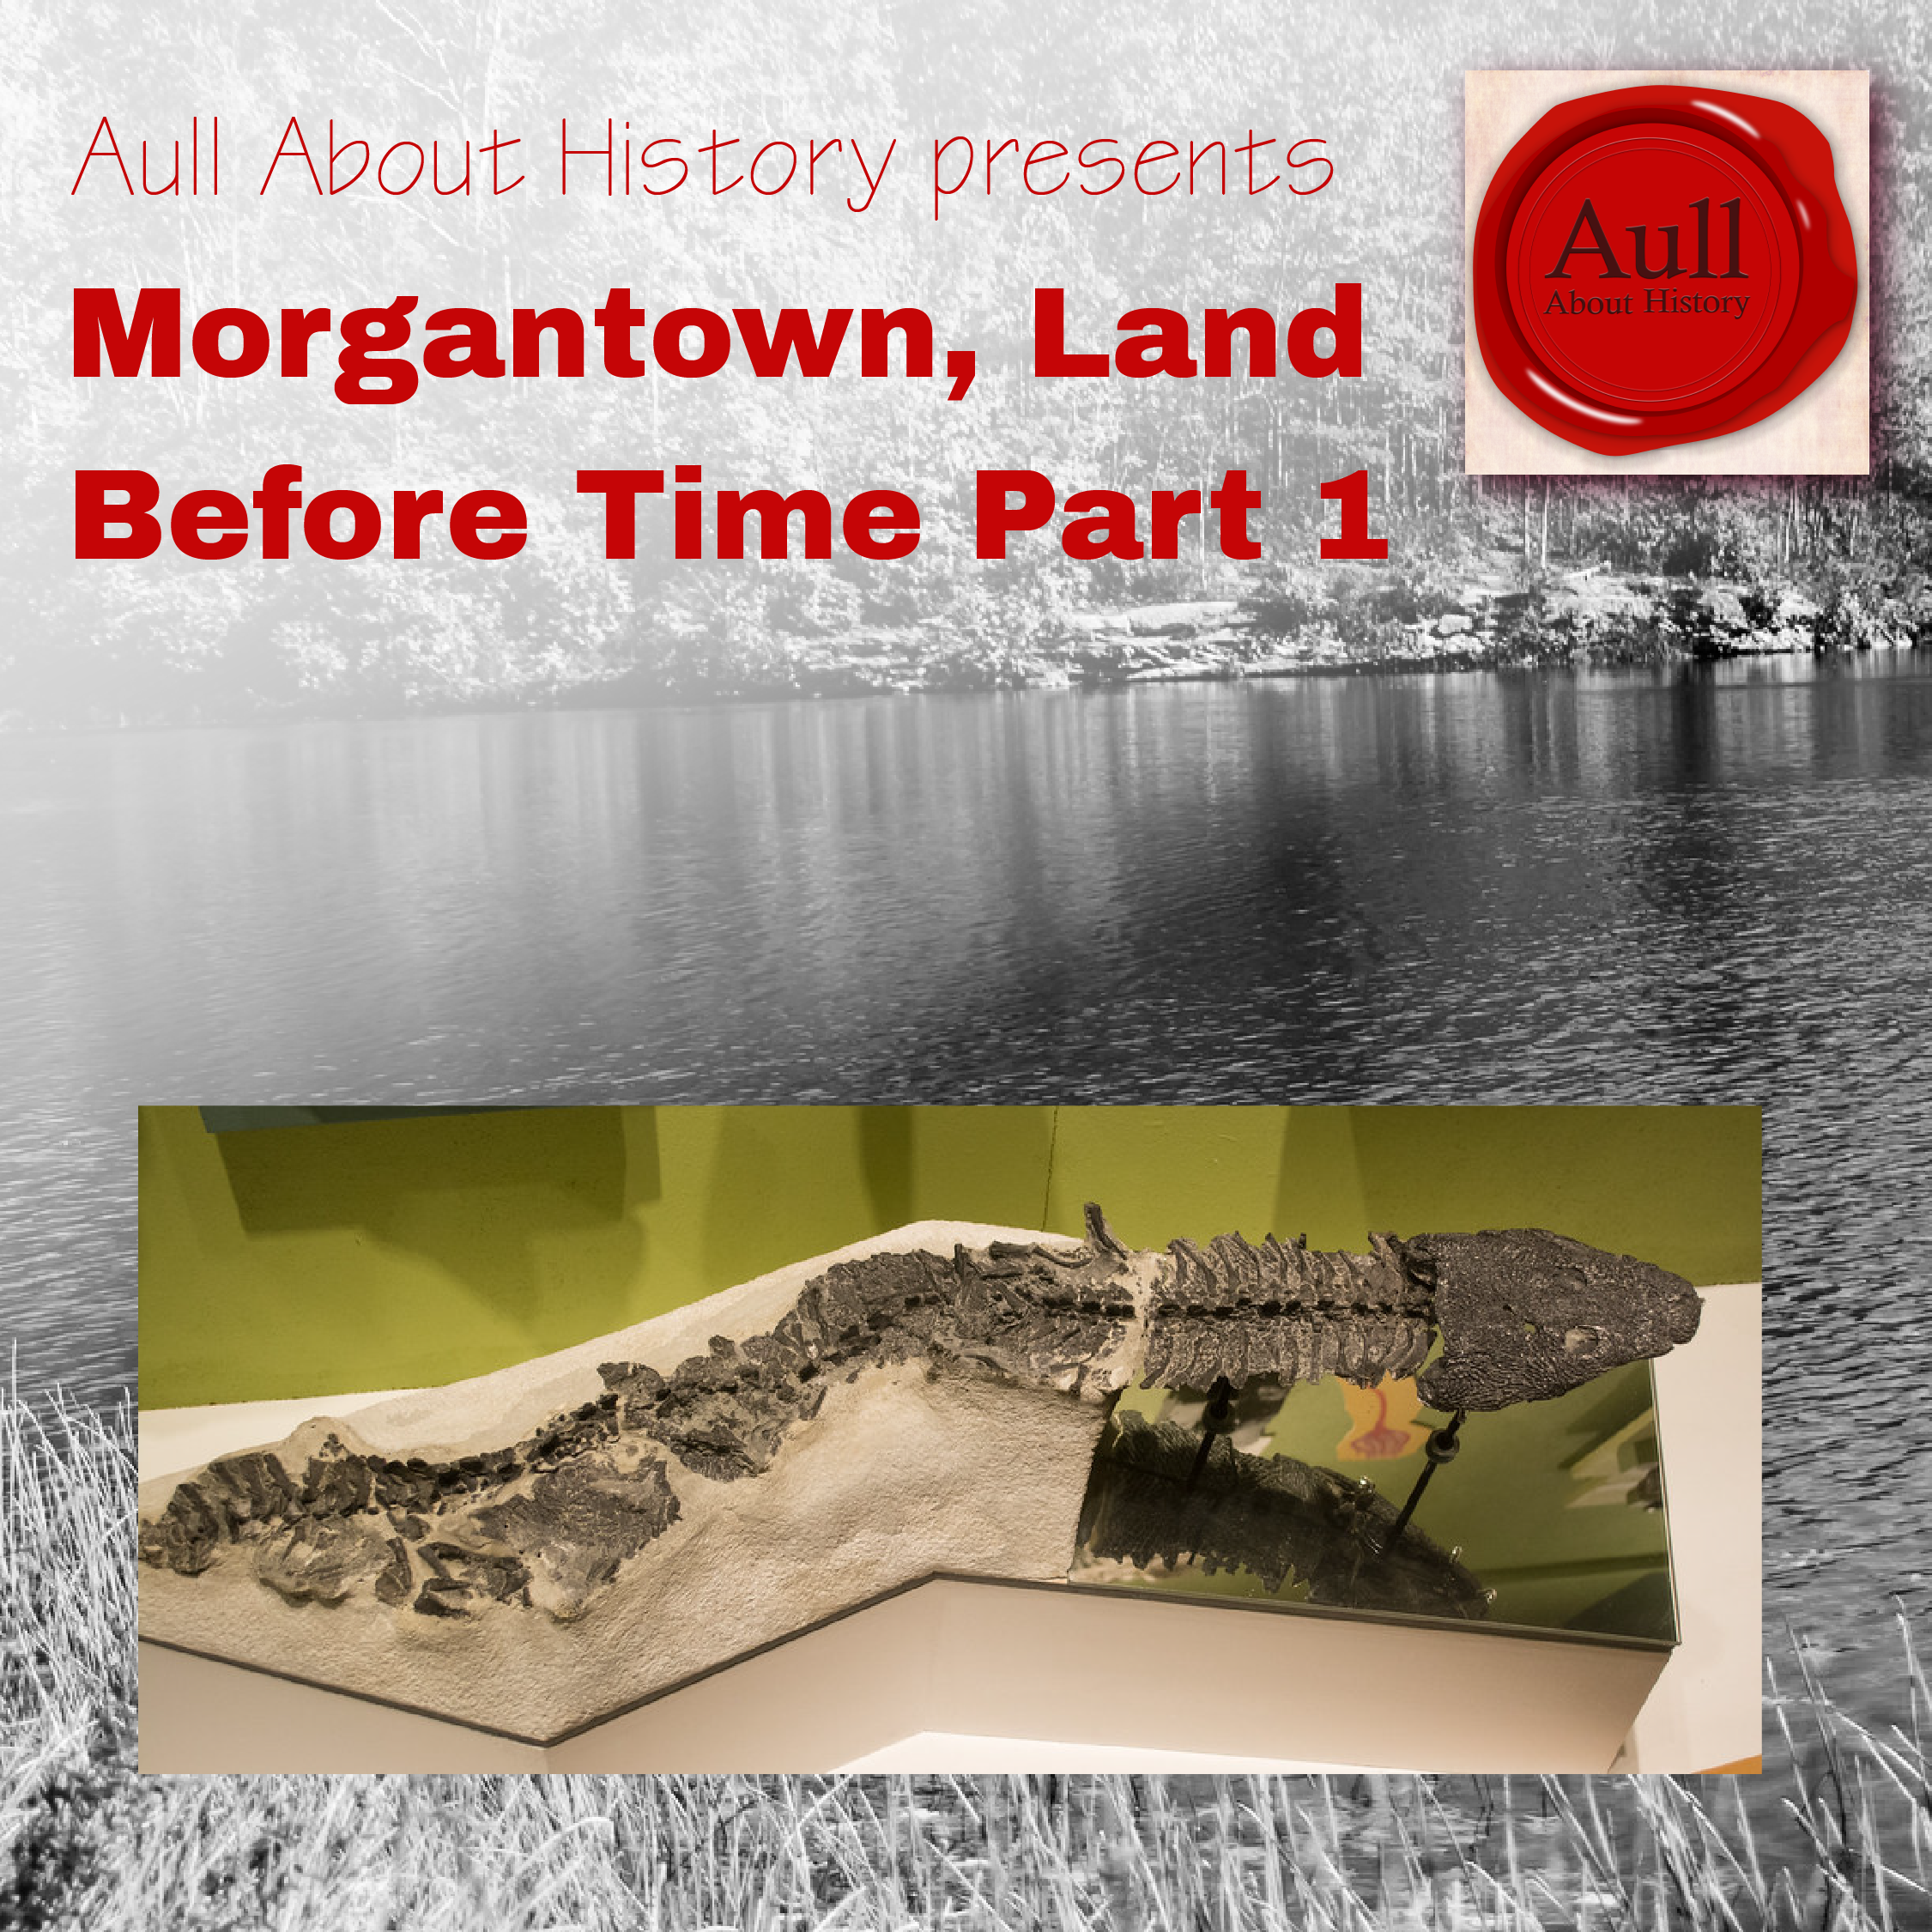 morgantown, land before time. aull center podcast -aull about history